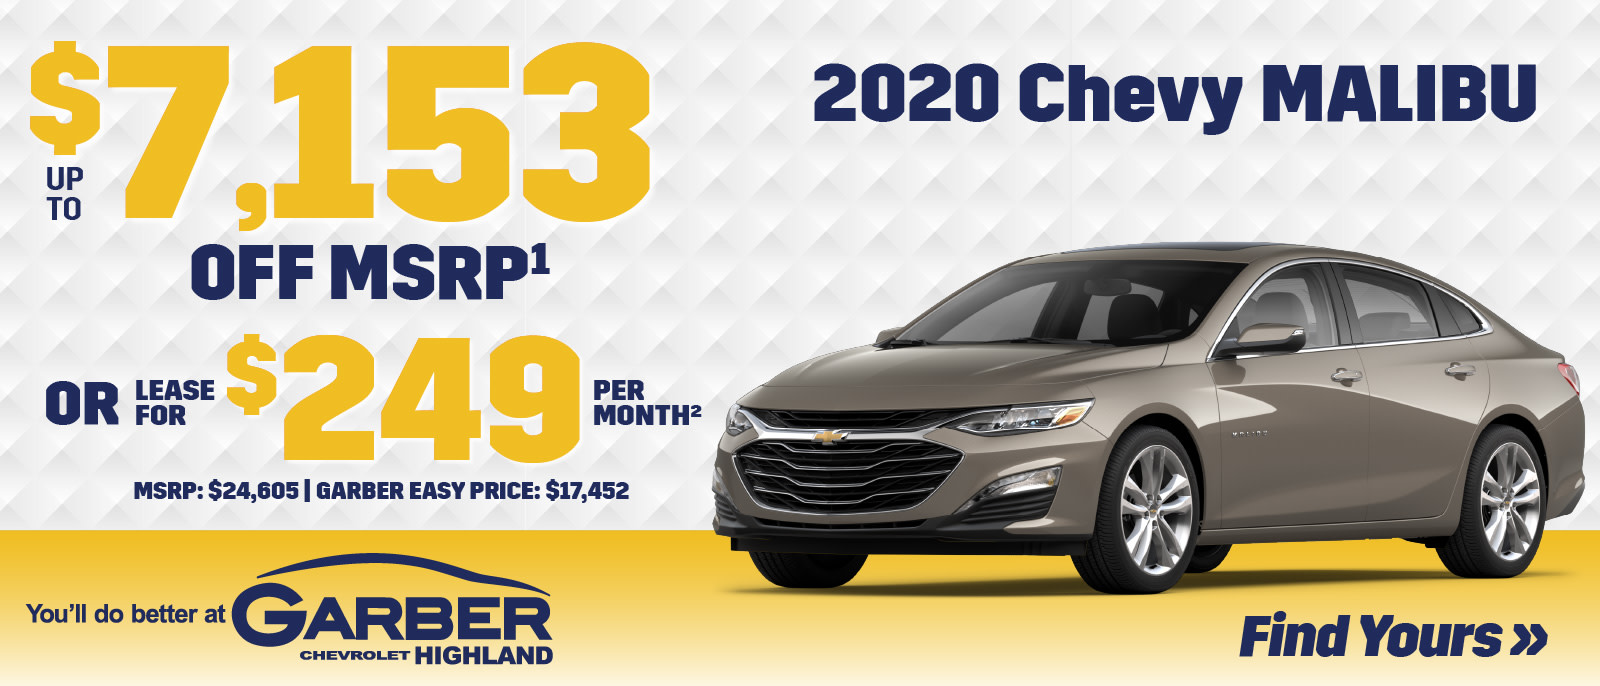 2020 Chevy Malibu | SAVE up to $7153 off MSRP or Lease for $249 per month| MSRP $24605 | GARBER EASY PRICE $17,452